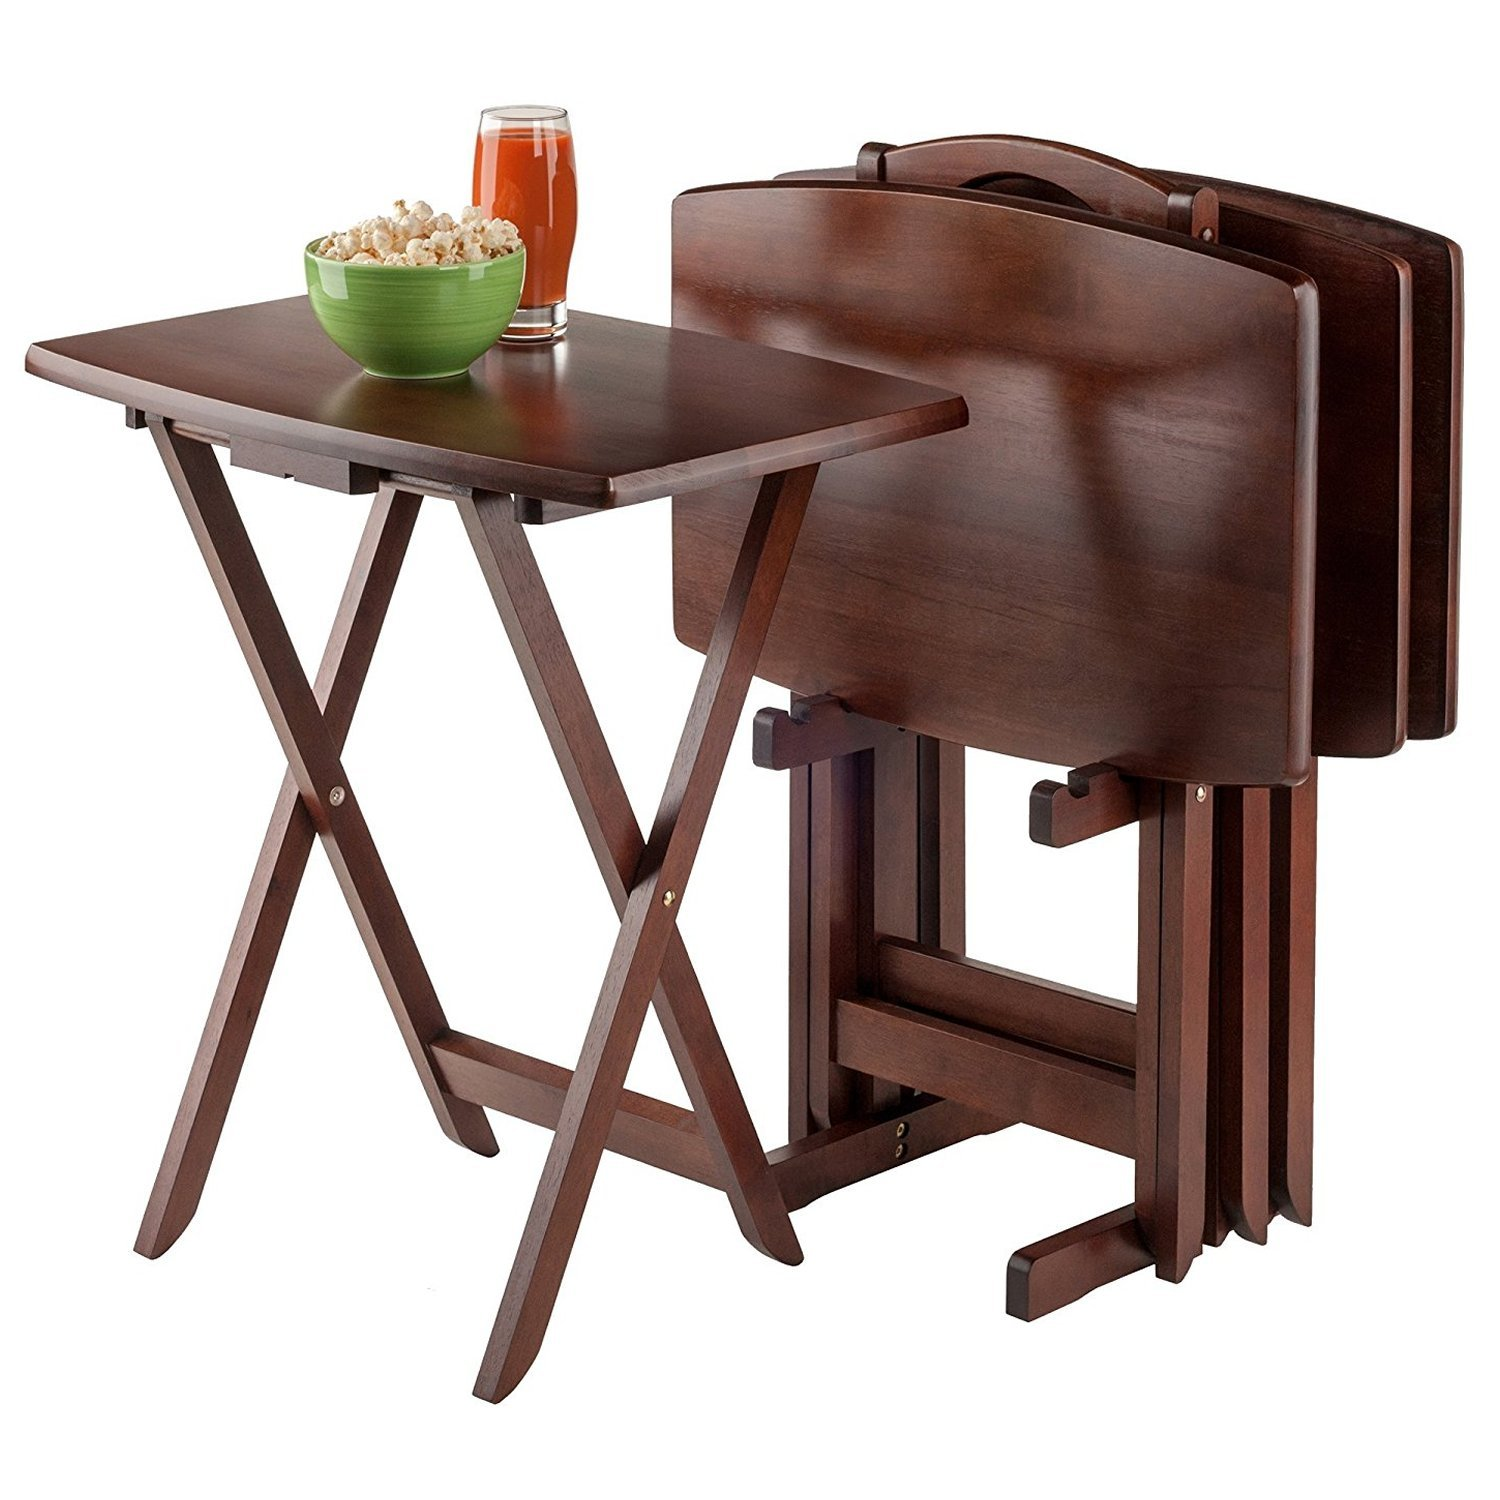 Schmidt Designs 5 Pieces Wooden Tray Table Set Walnut Color - Folding Solid Wood Stand for Food Drinks Meal Game Dinner Laptop Snack TV Dining Living Room Bedroom – Durable Sturdy Antique Design Décor